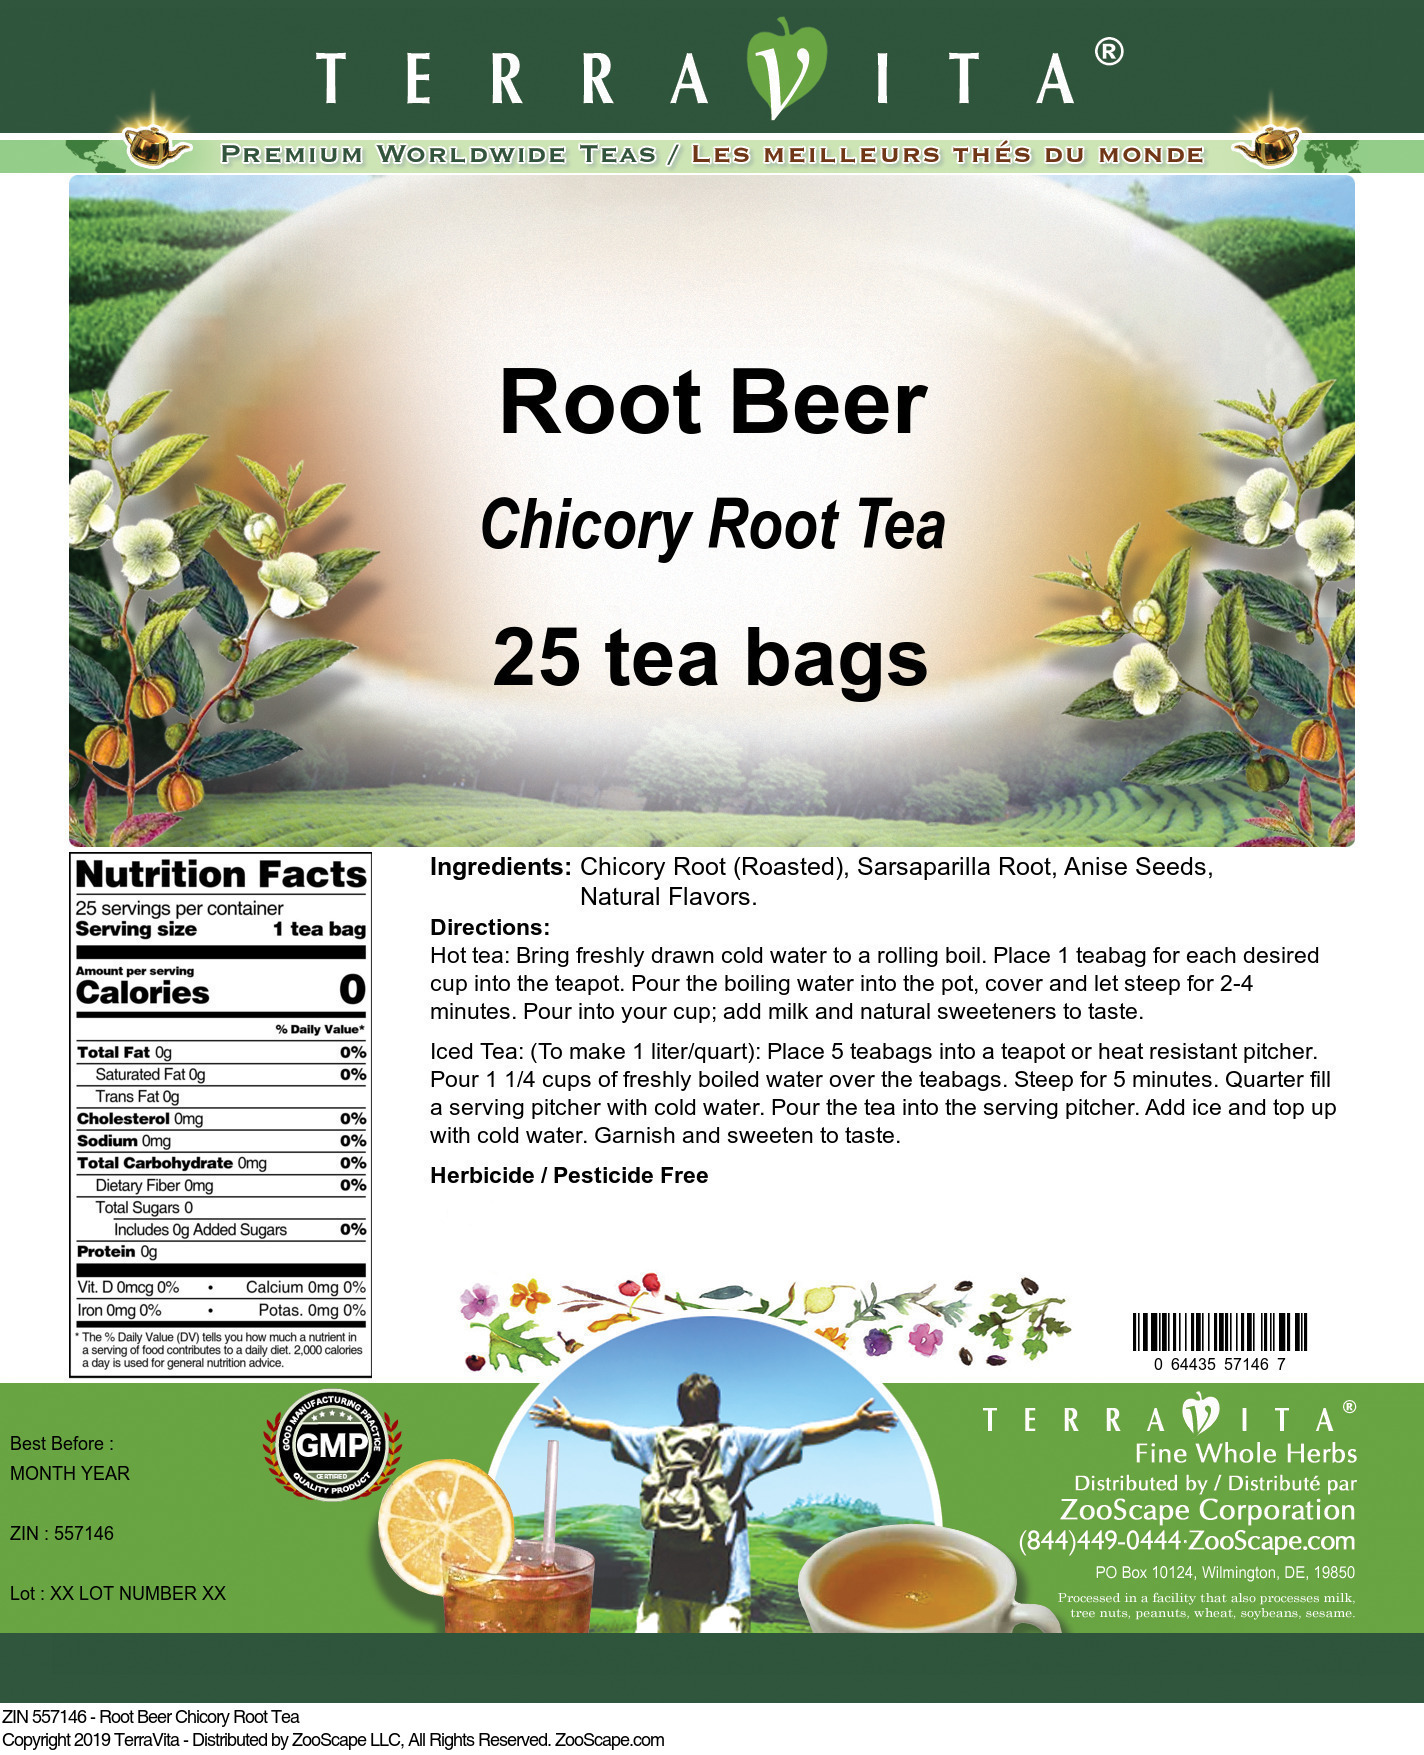 Root Beer Chicory Root